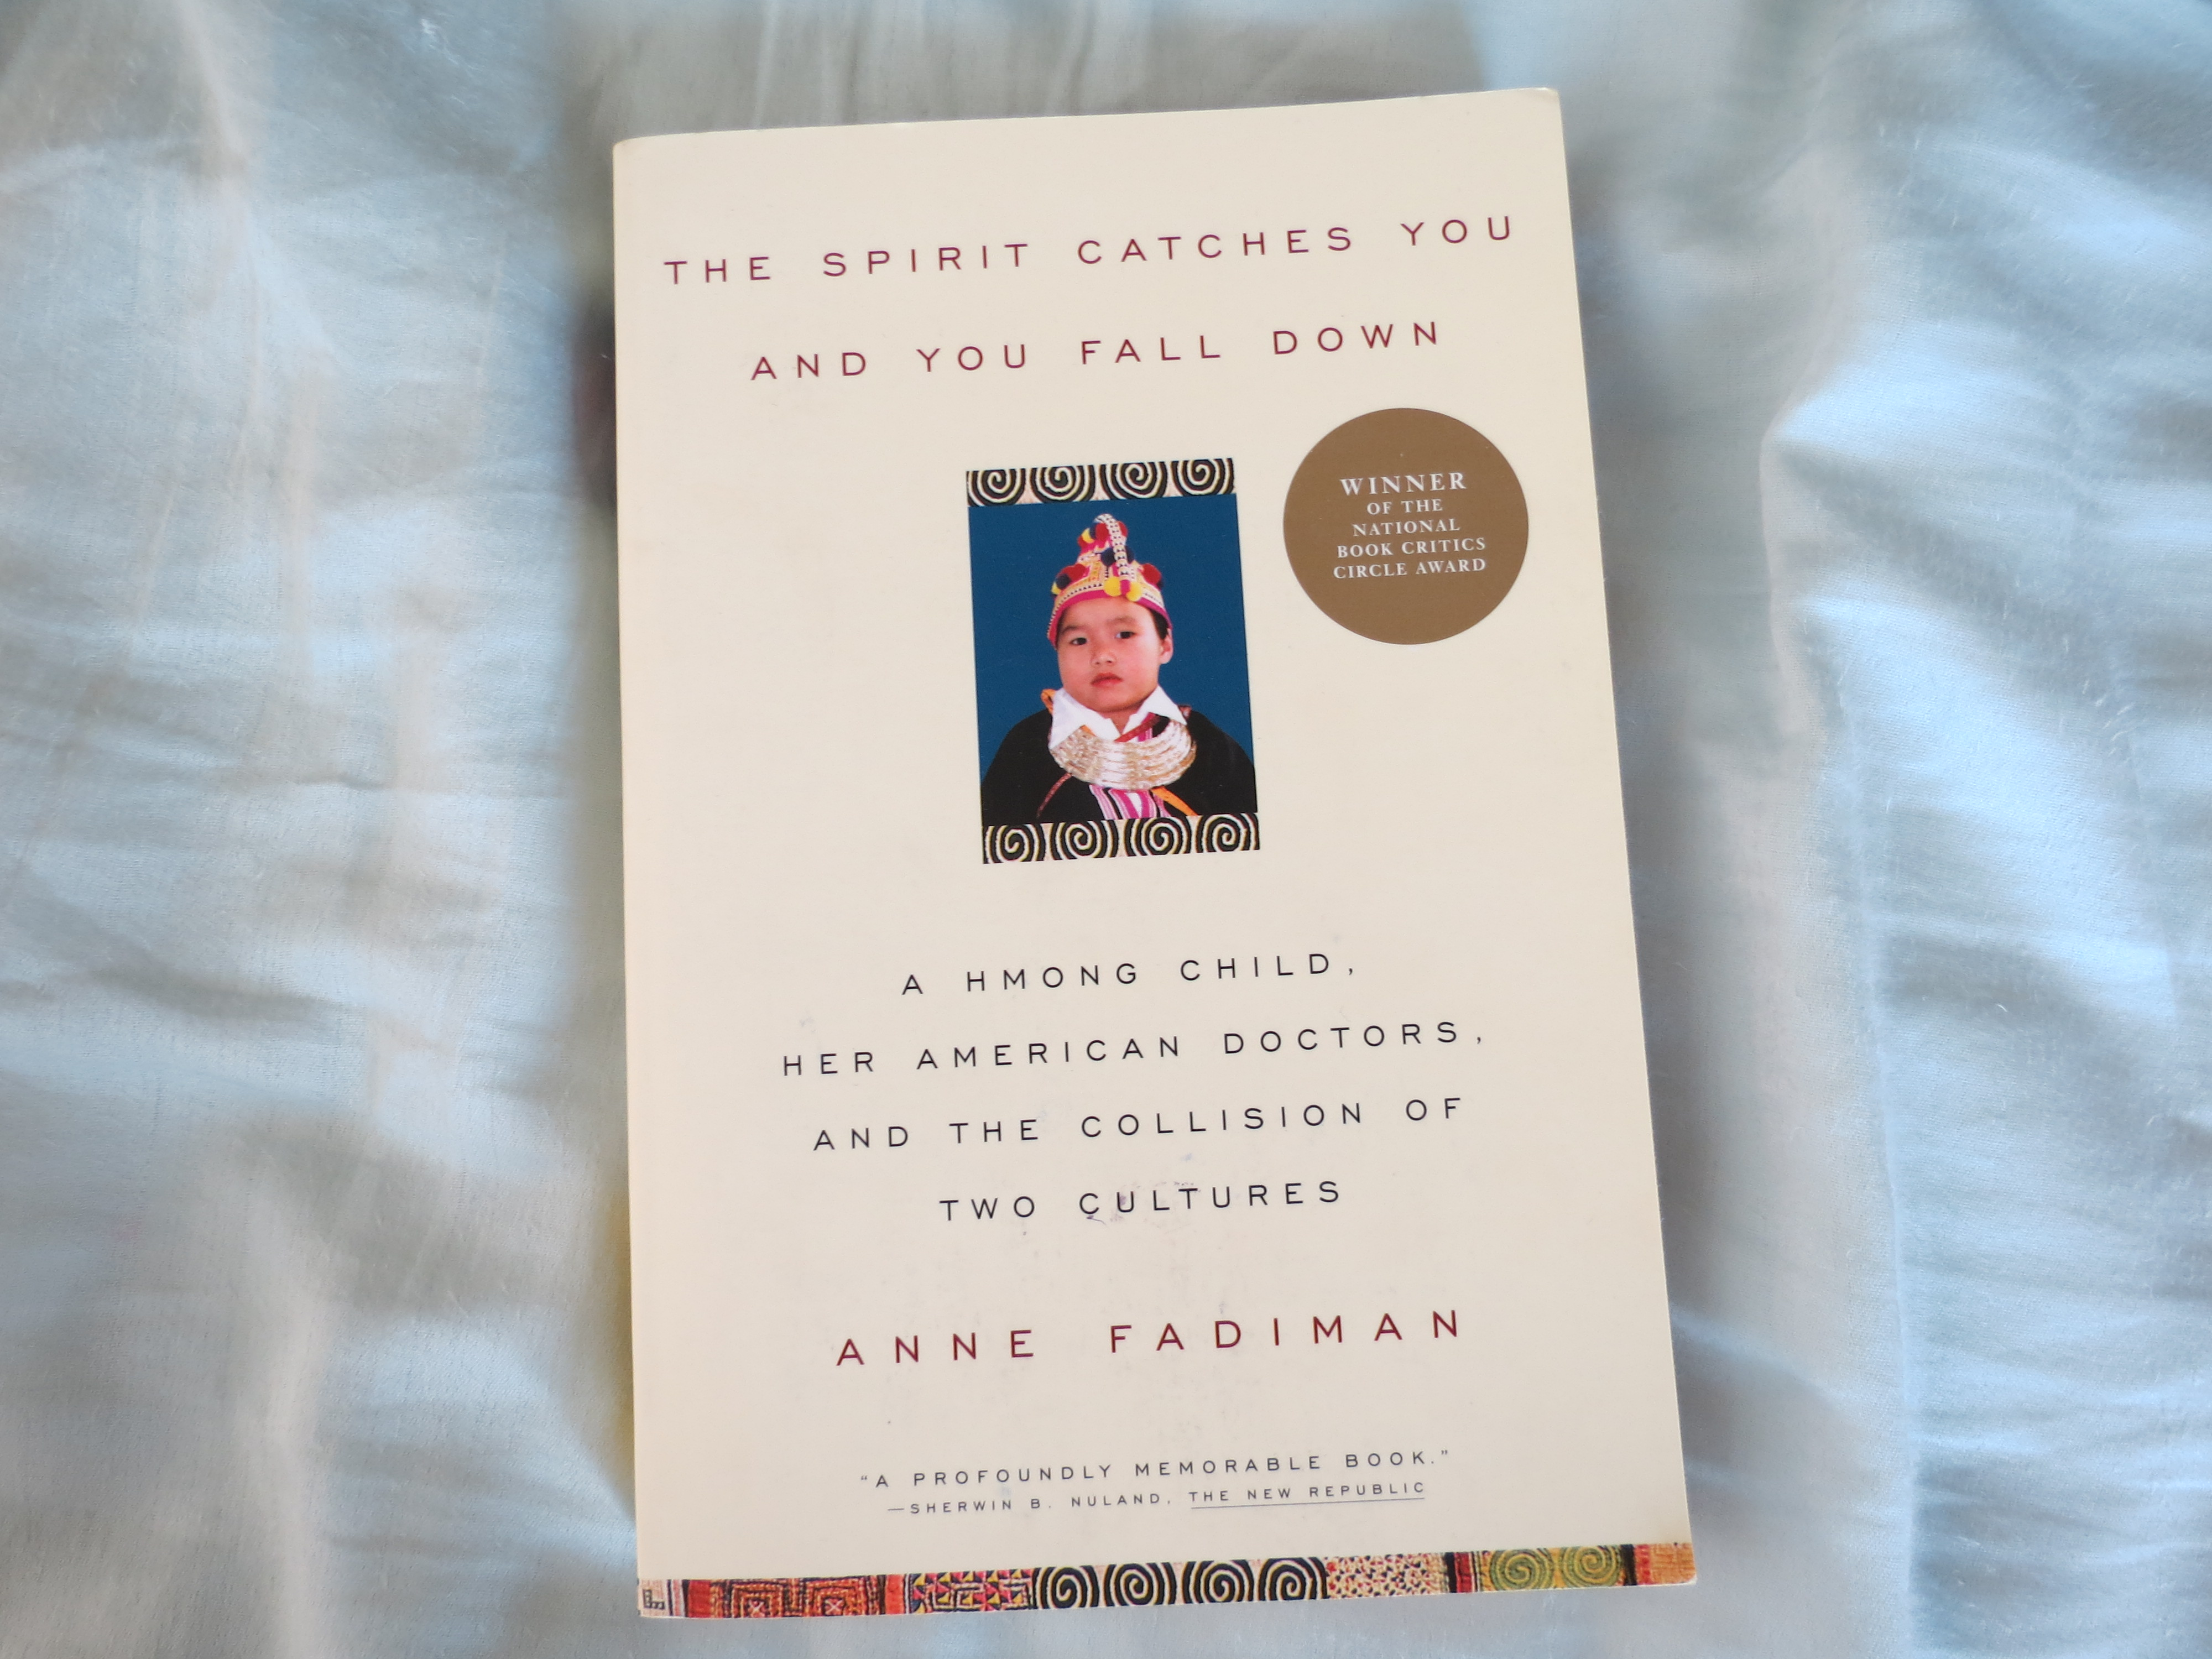 the spirit catches you and you fall down book essay A collection of first-person essays on books and reading the spirit catches you and you fall down: the best american essays 2003 by anne fadiman.